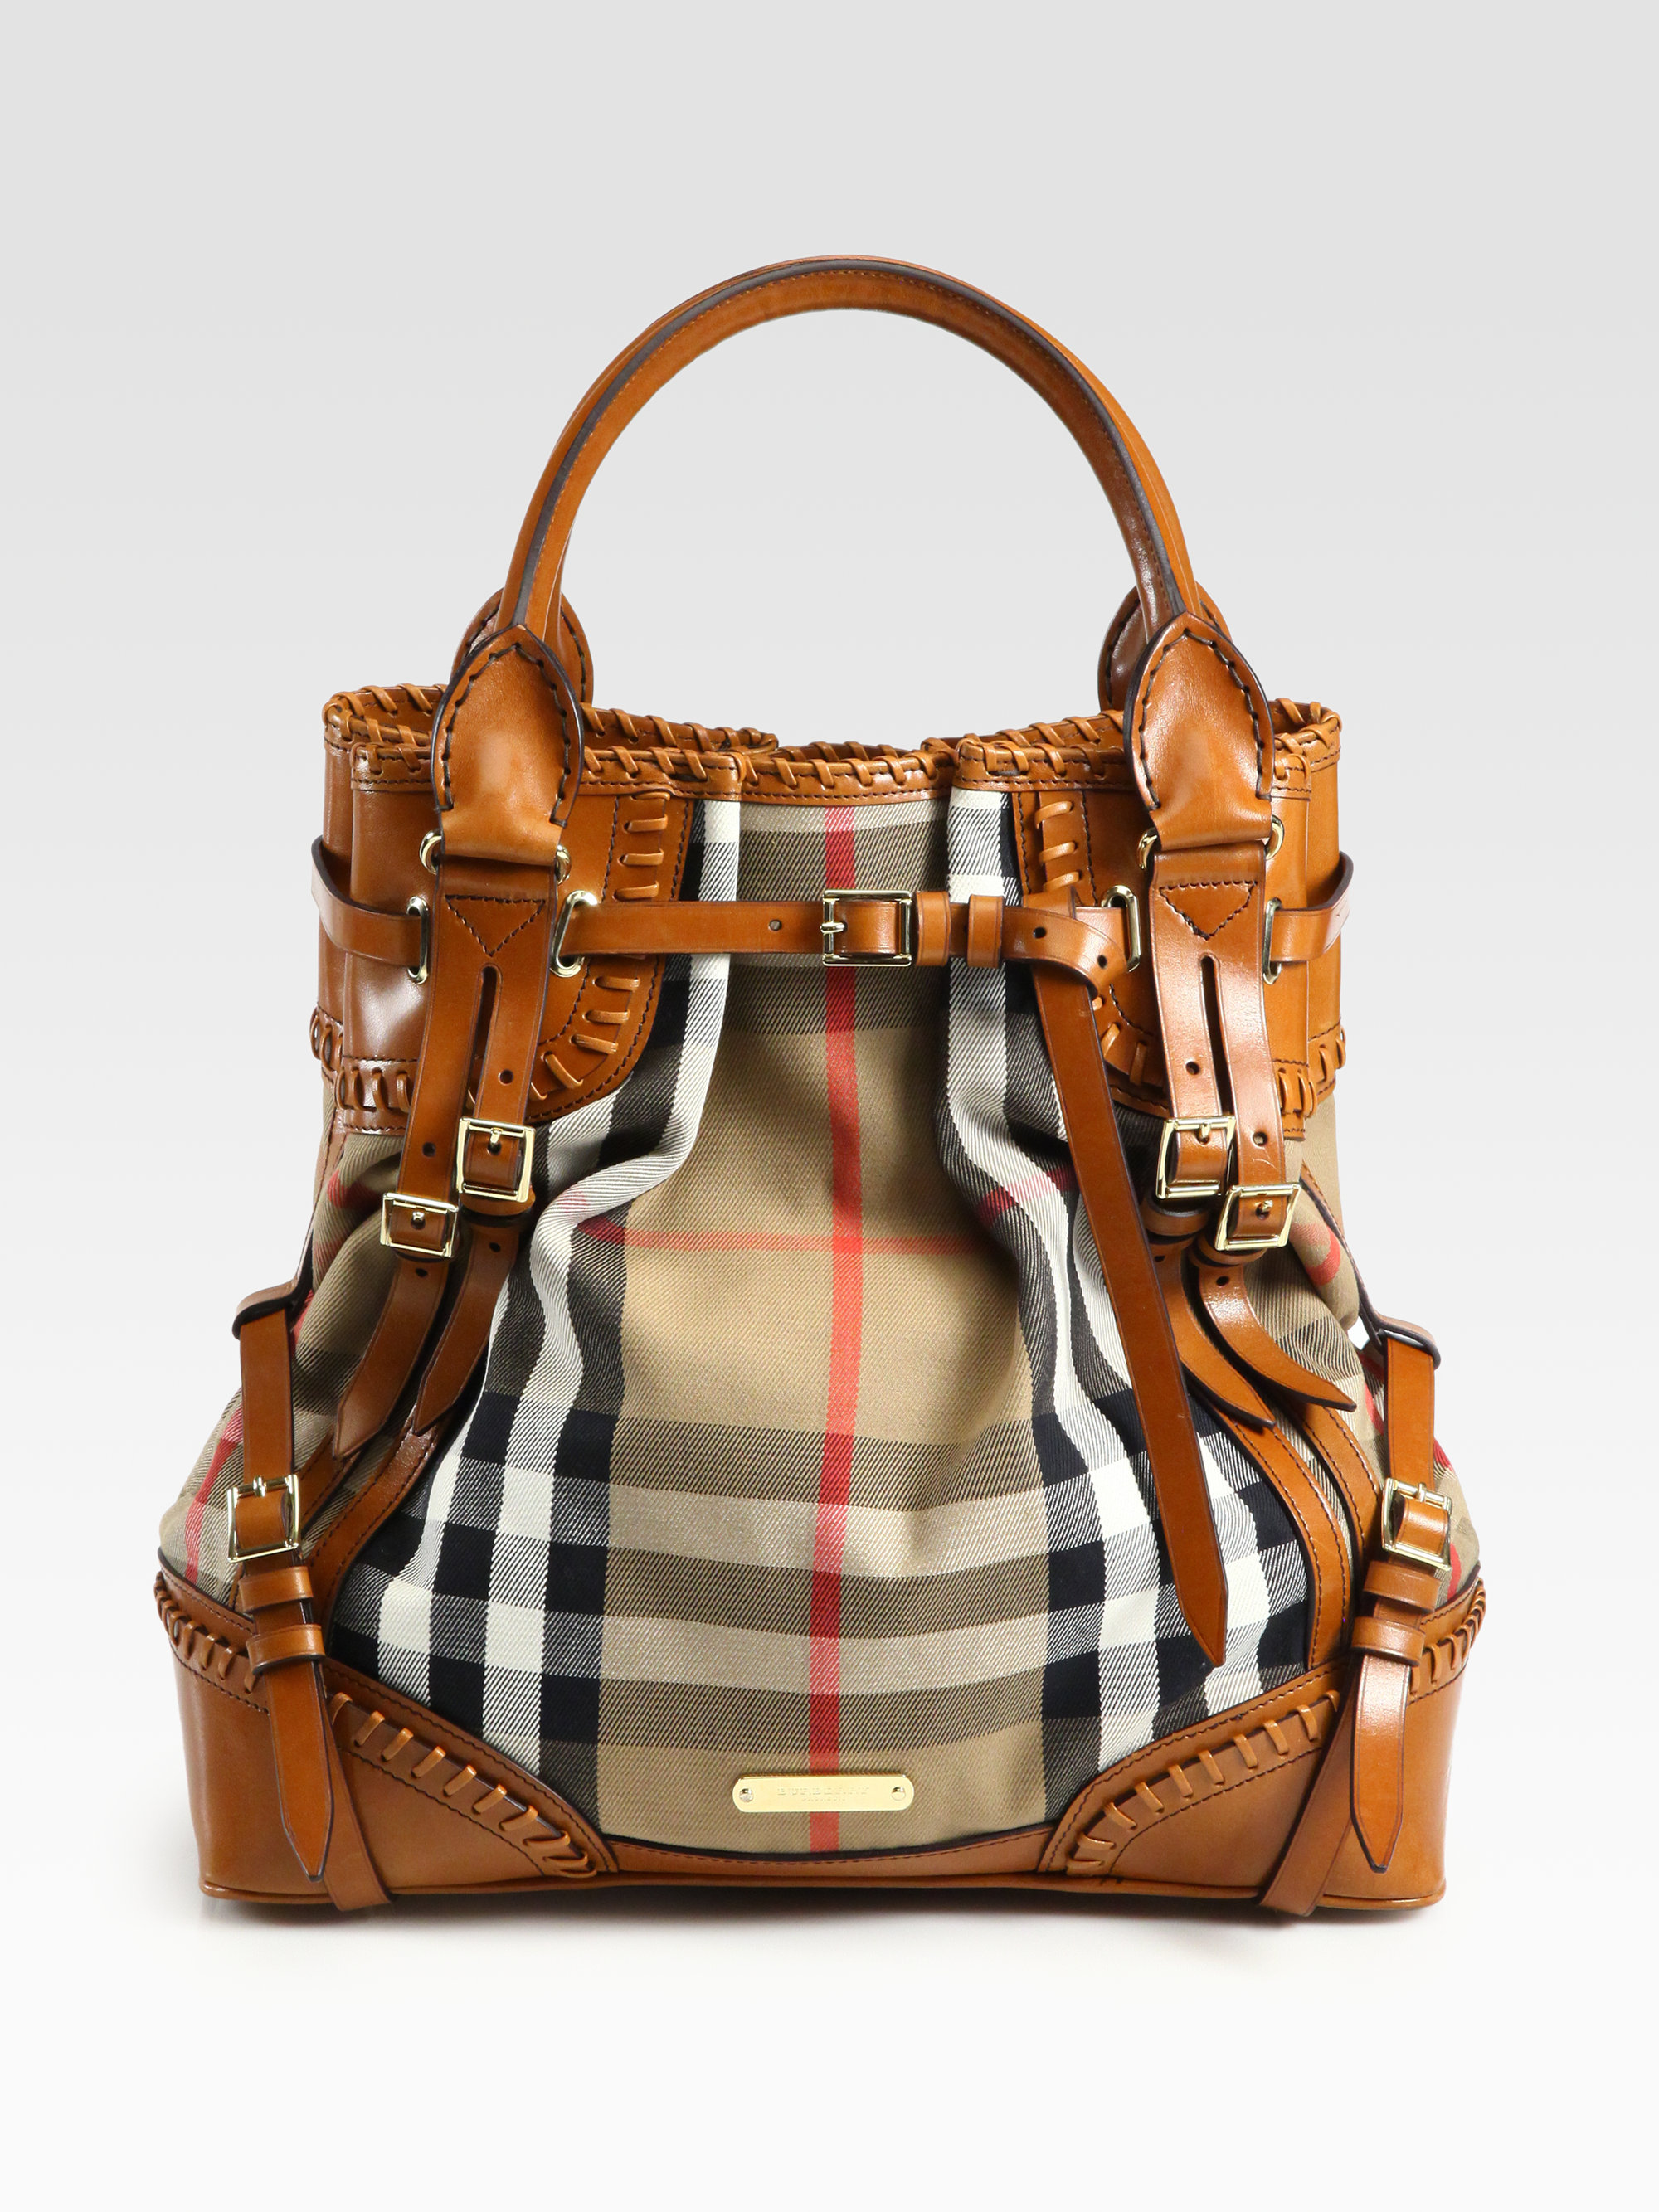 Burberry prorsum Whipstitch Leather   Check Canvas Tote Bag in Brown  599412d8b317c